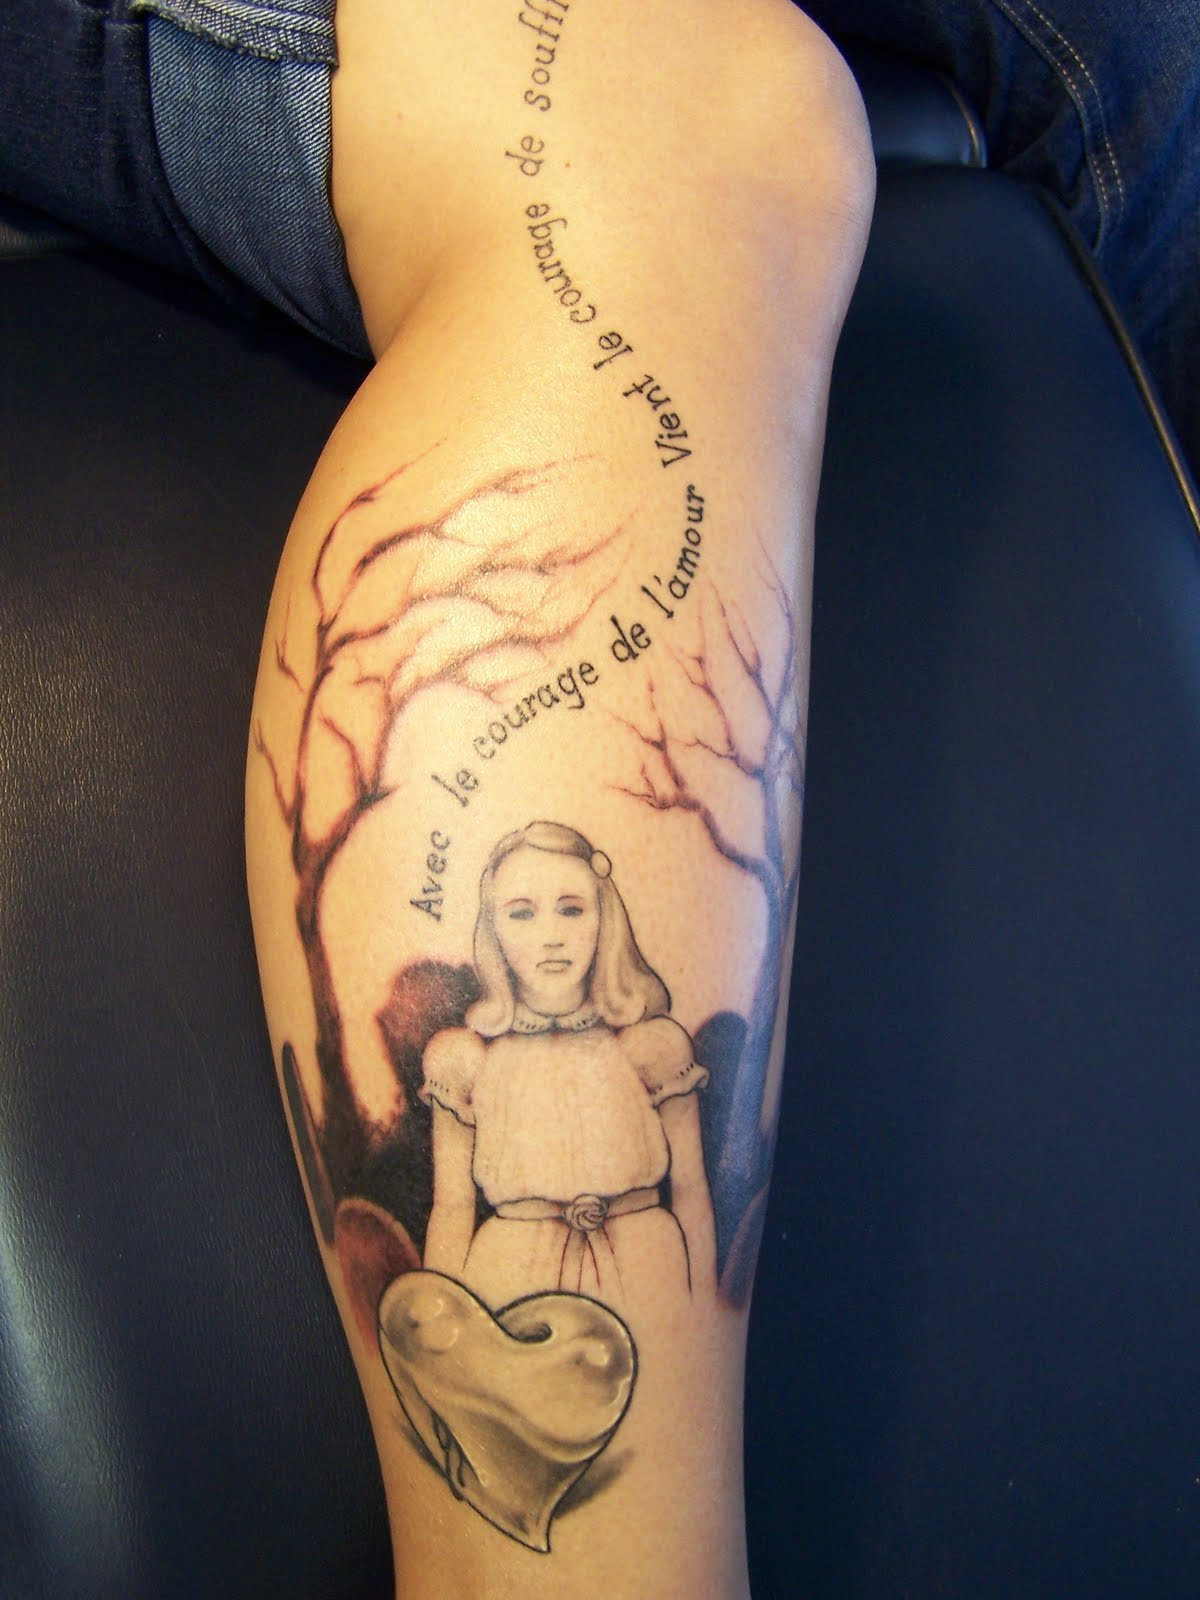 Artistic ink morbid tale for a mortuary girl for Tn tattoo laws